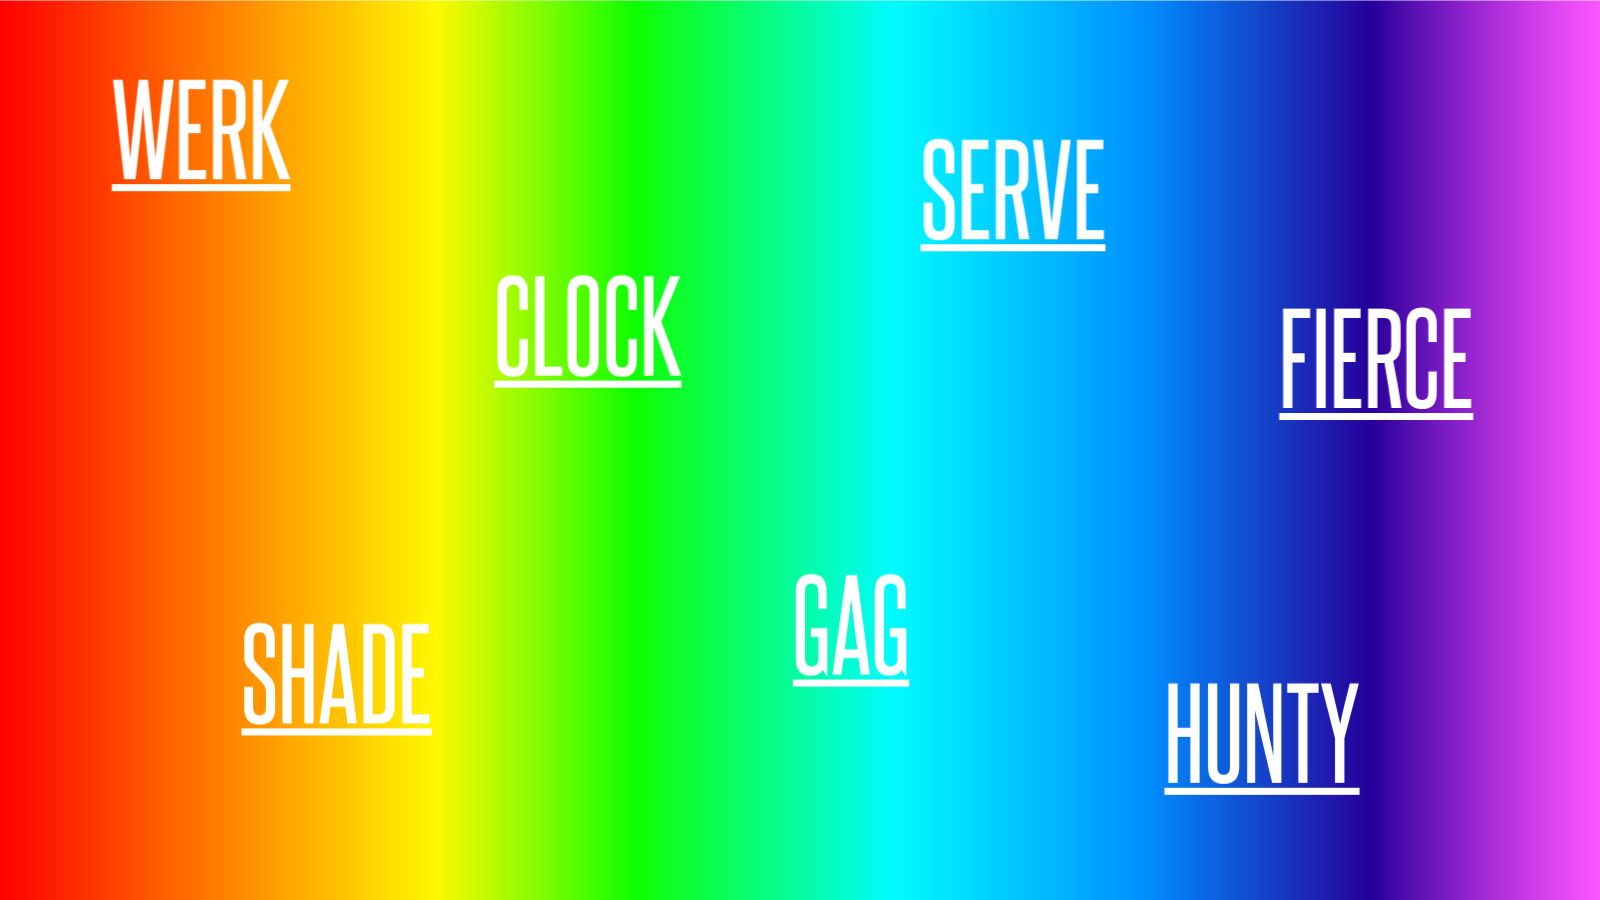 LGBTQ Gradient and phrases